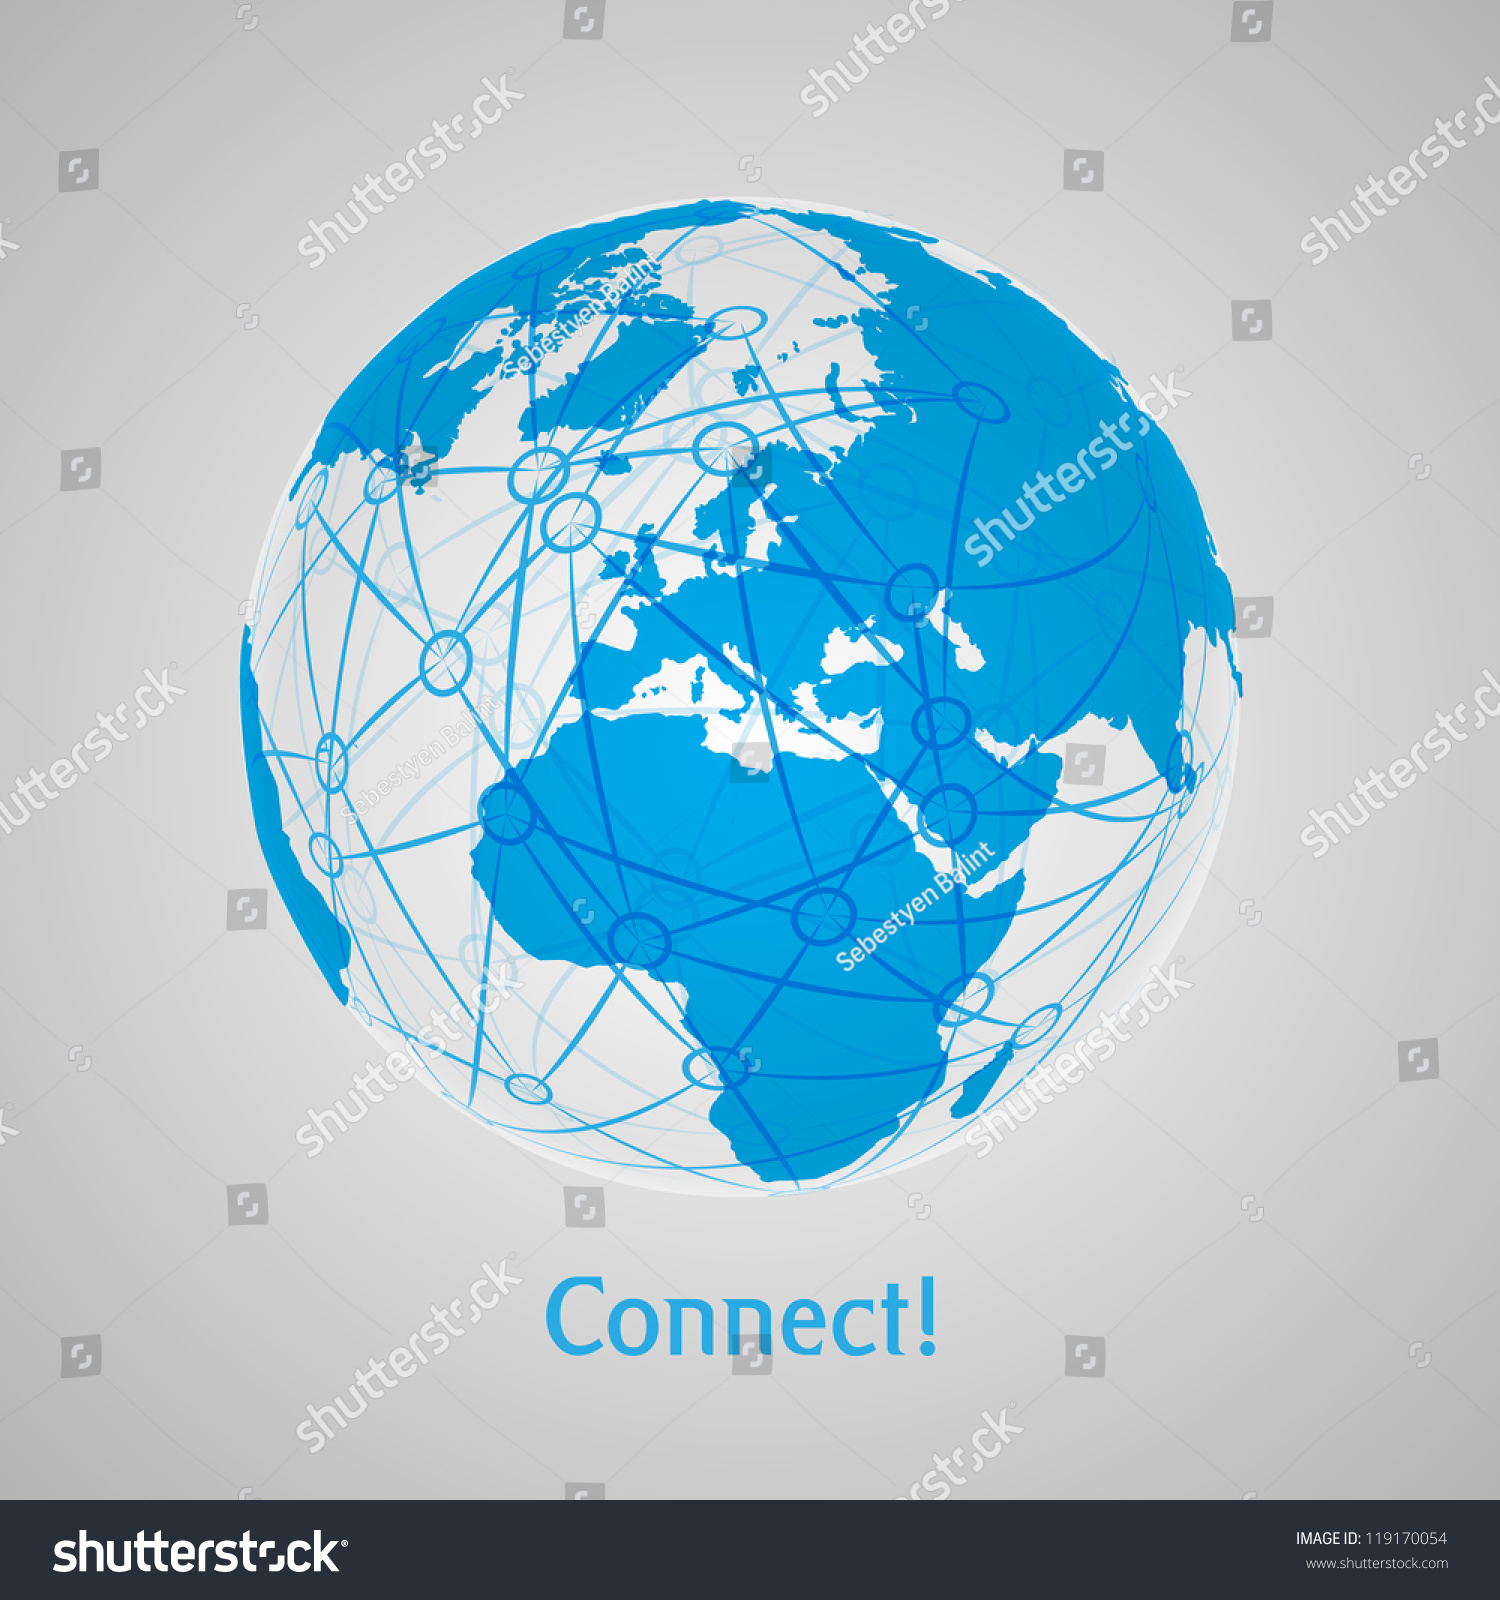 Connect World Abstract Concept Art Map Stock-vektorgrafik 119170054 ...